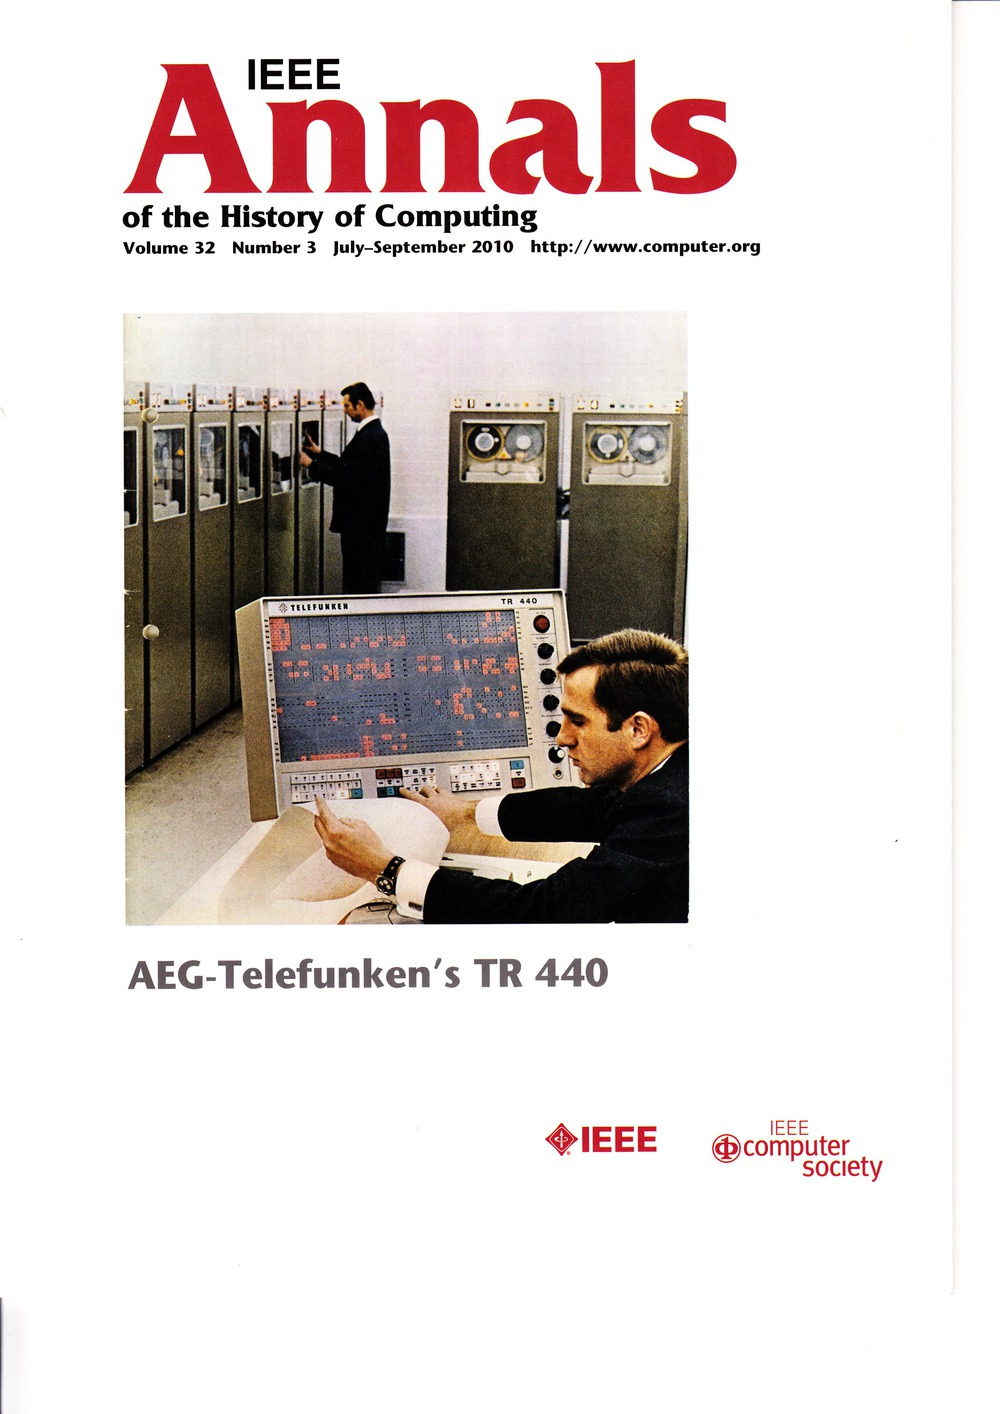 Scan of Document: IEEE Annals of the History of Computing - July-September 2010